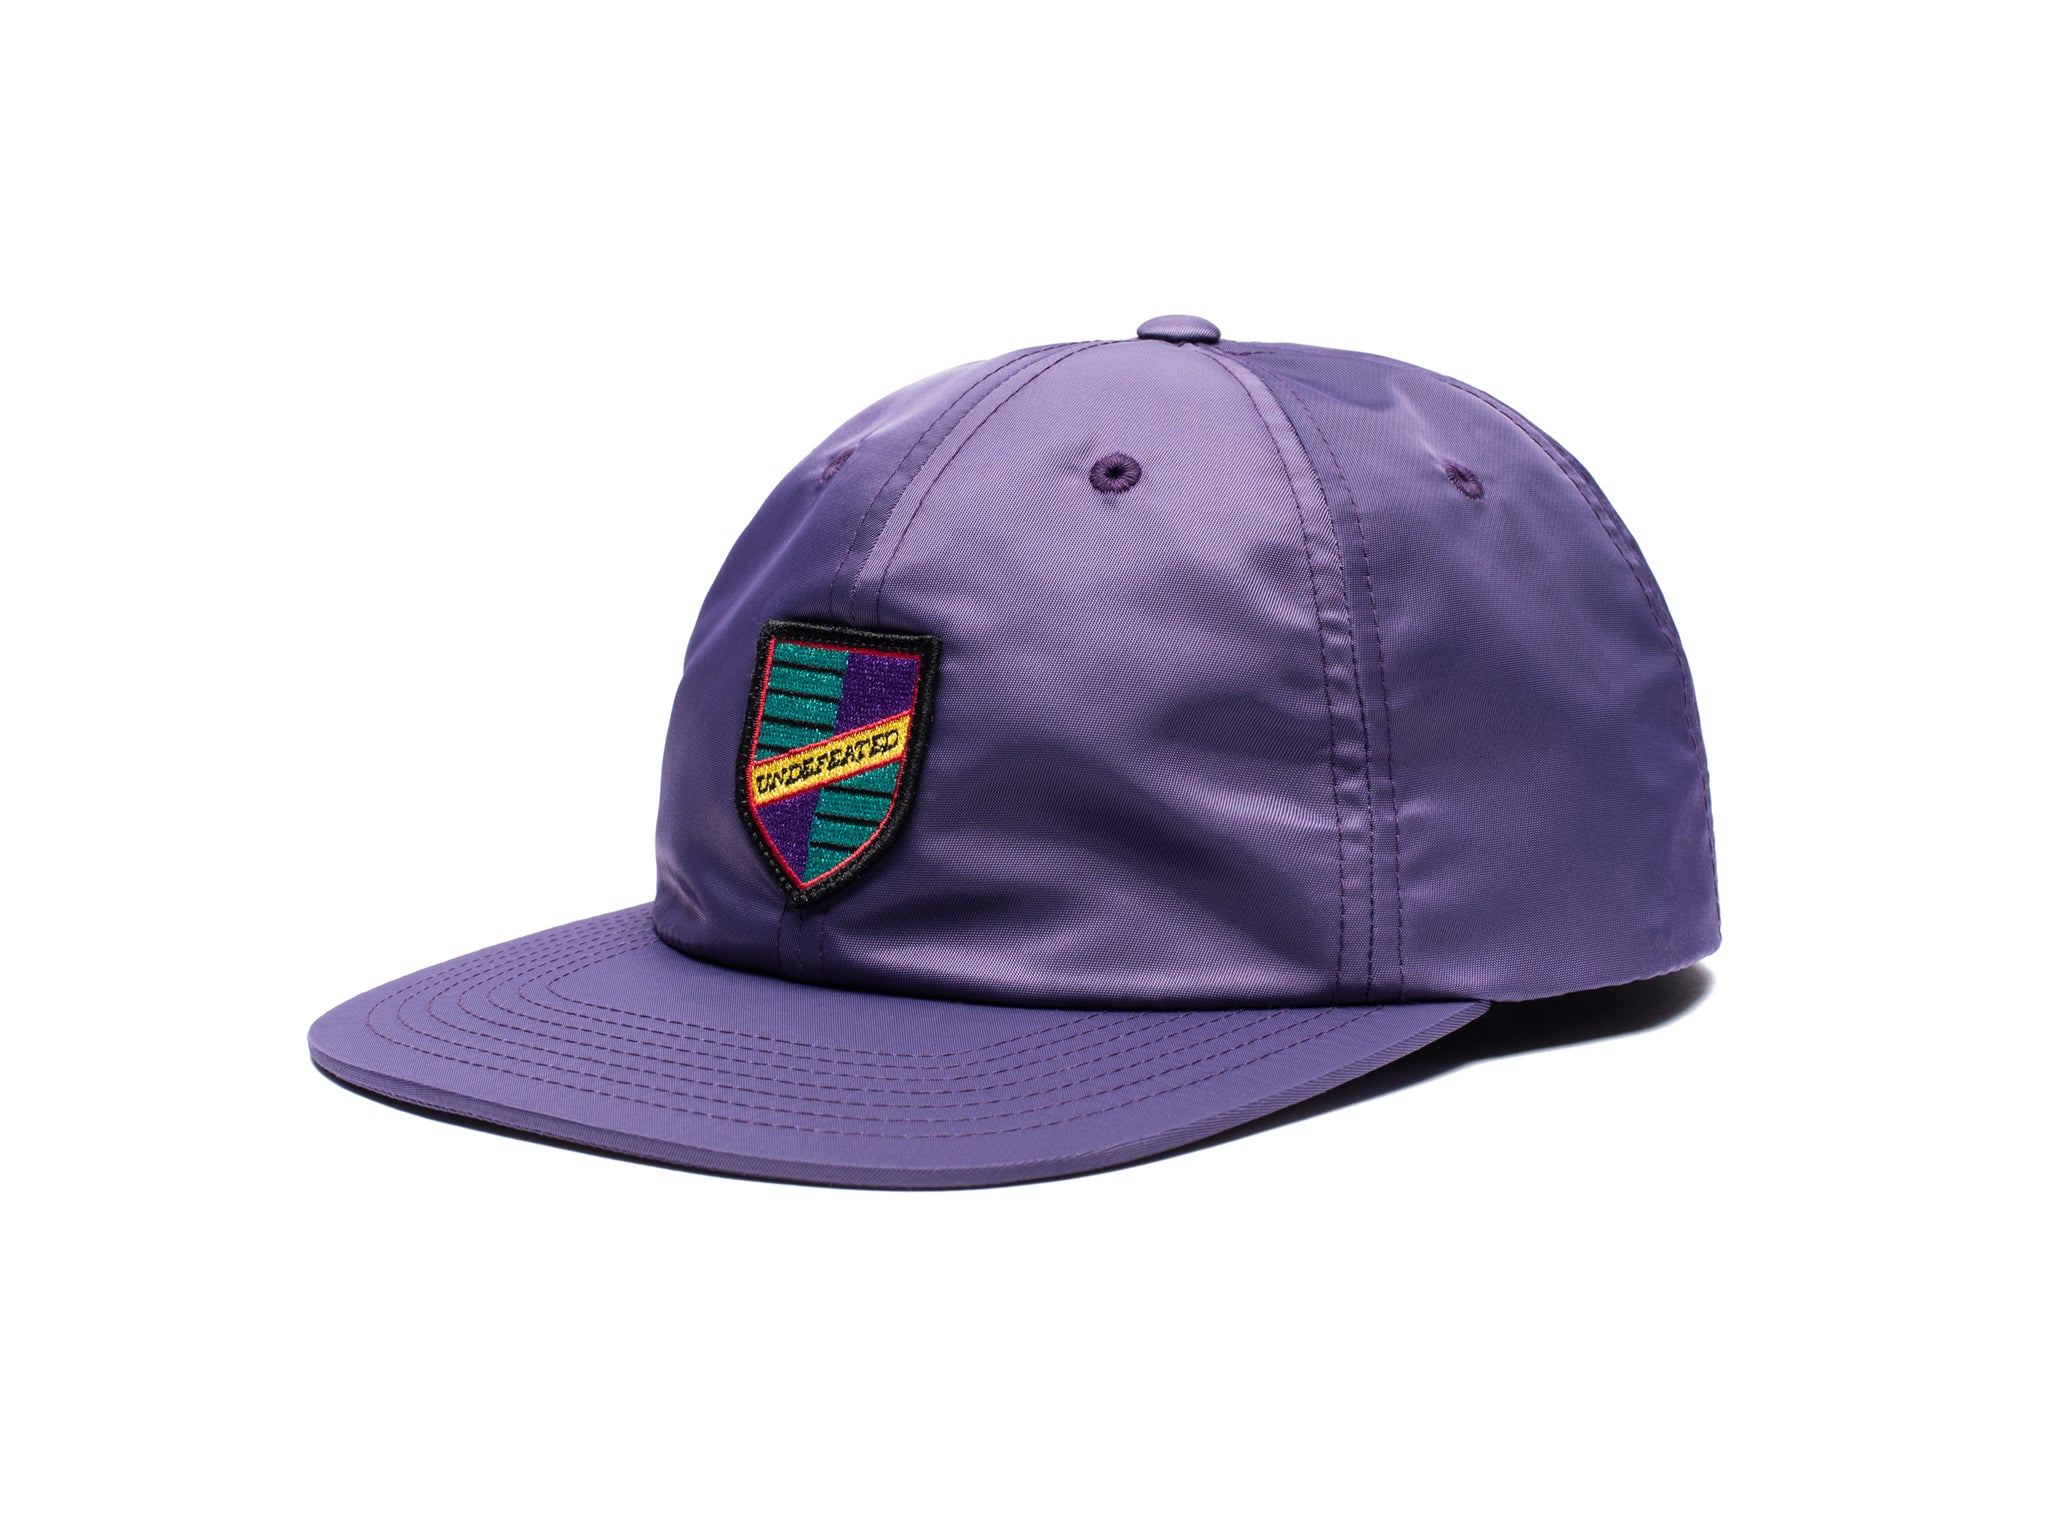 UNDEFEATED CREST CAP